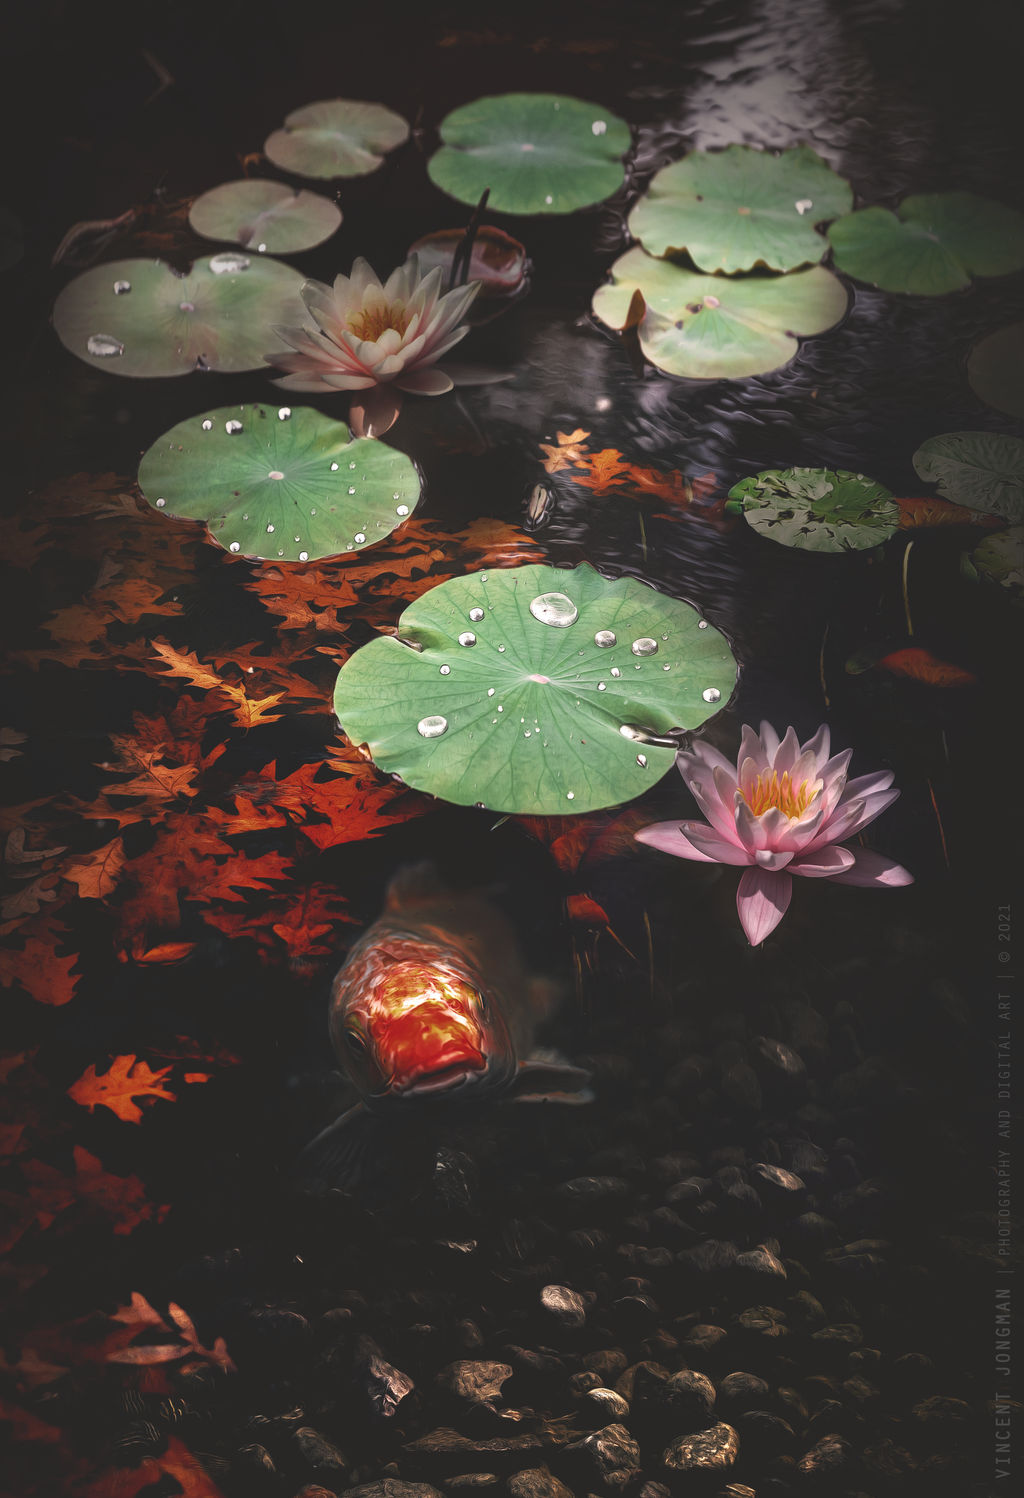 The Pond of Whispers